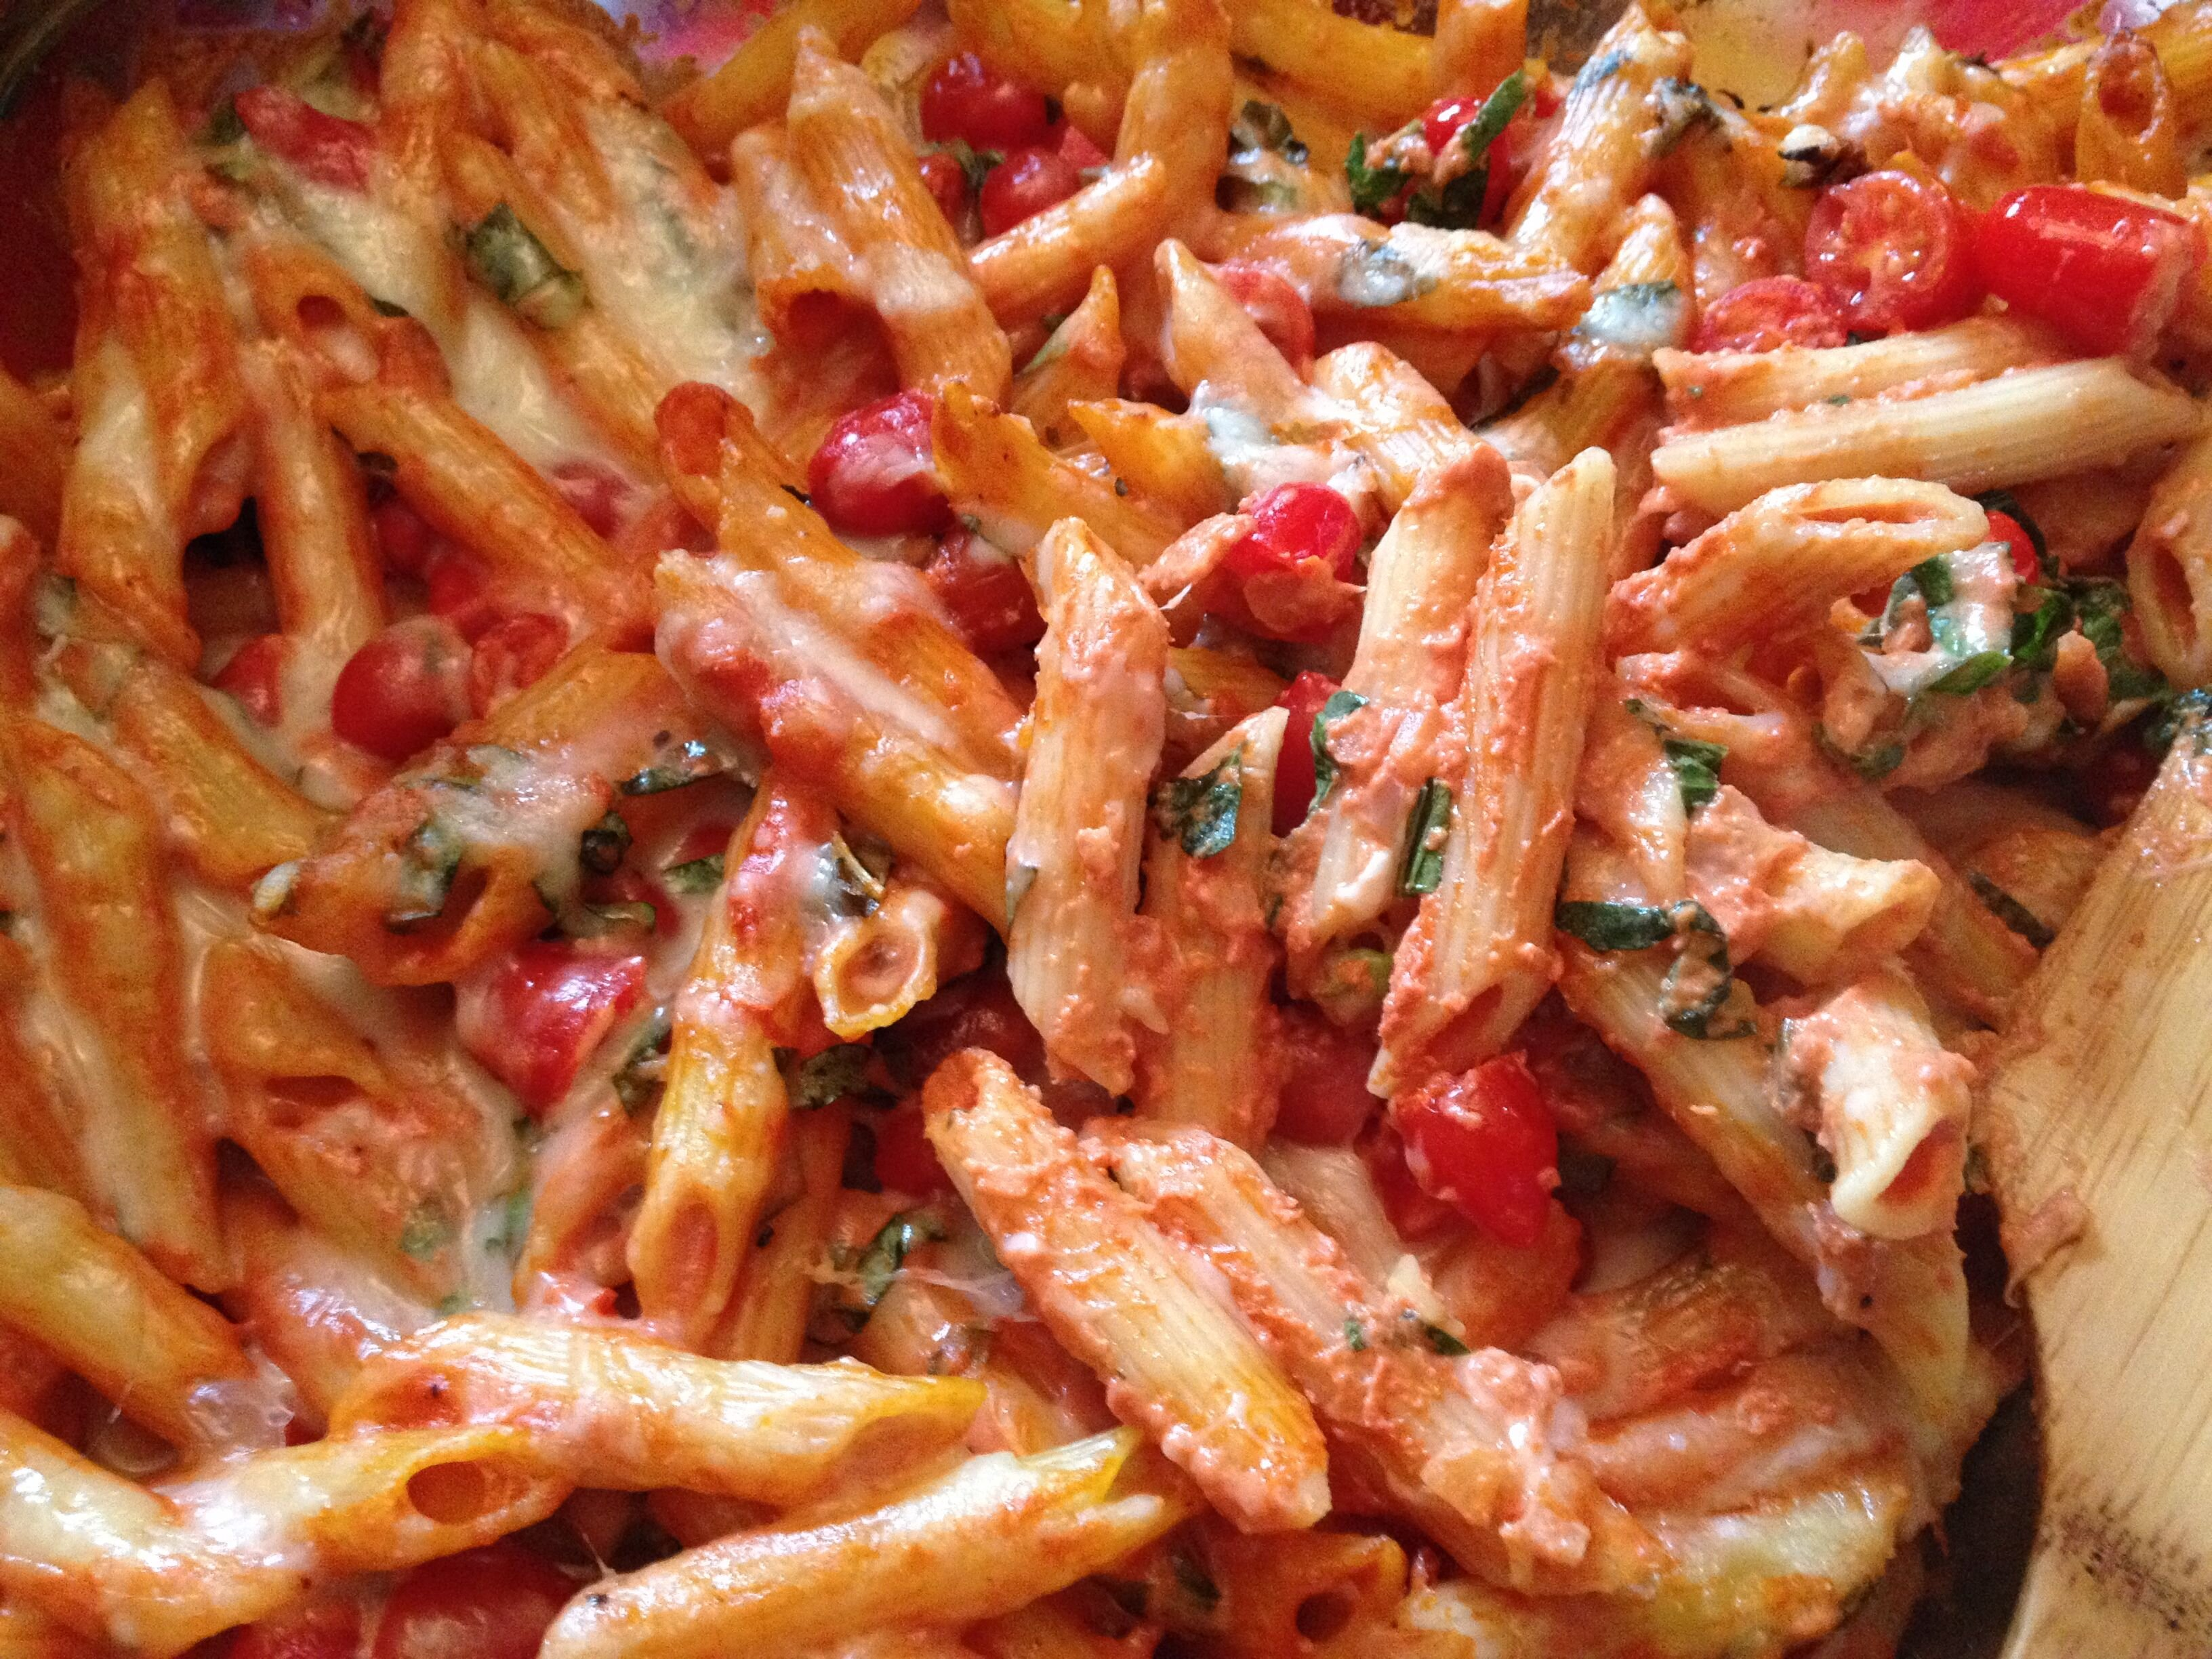 back to creamy pasta bake with cherry tomatoes and basil recipe